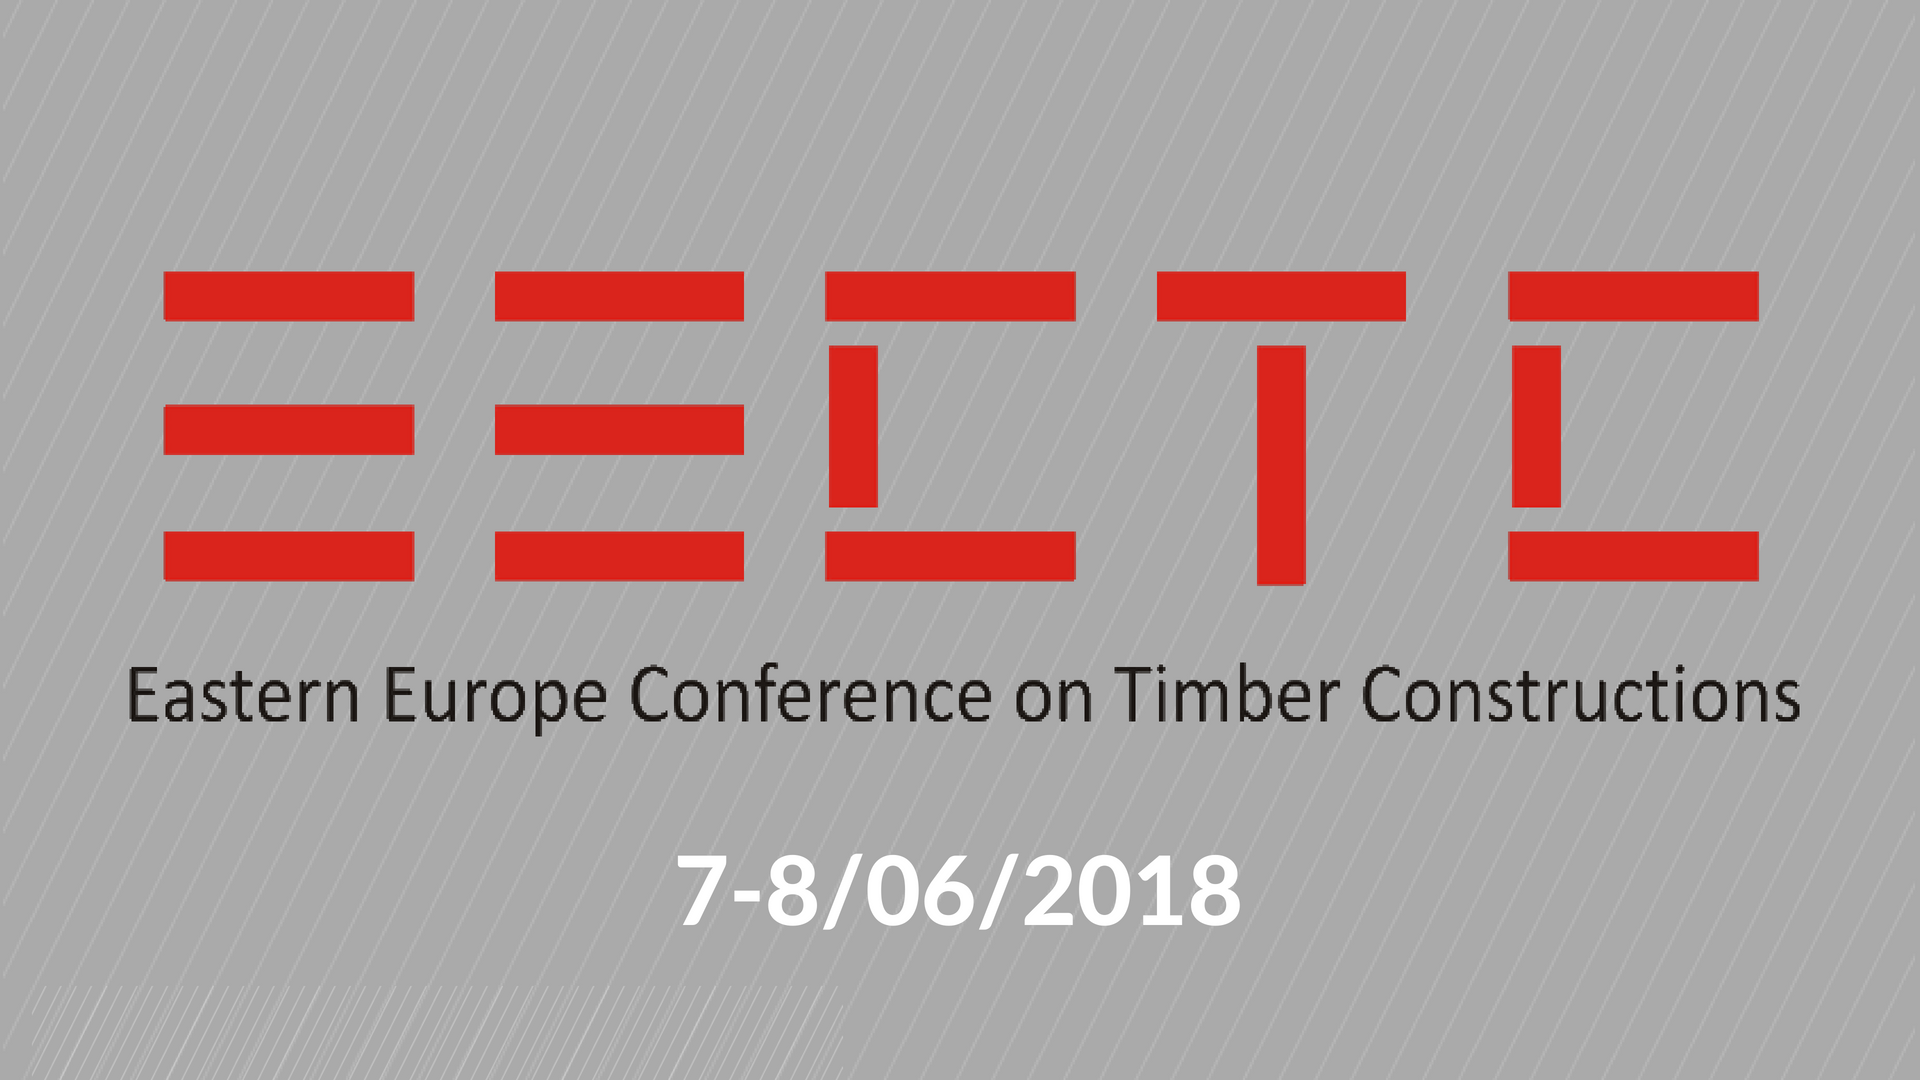 EASTERN EUROPE CONFERENCE ON TIMBER CONSTRUCTIONS